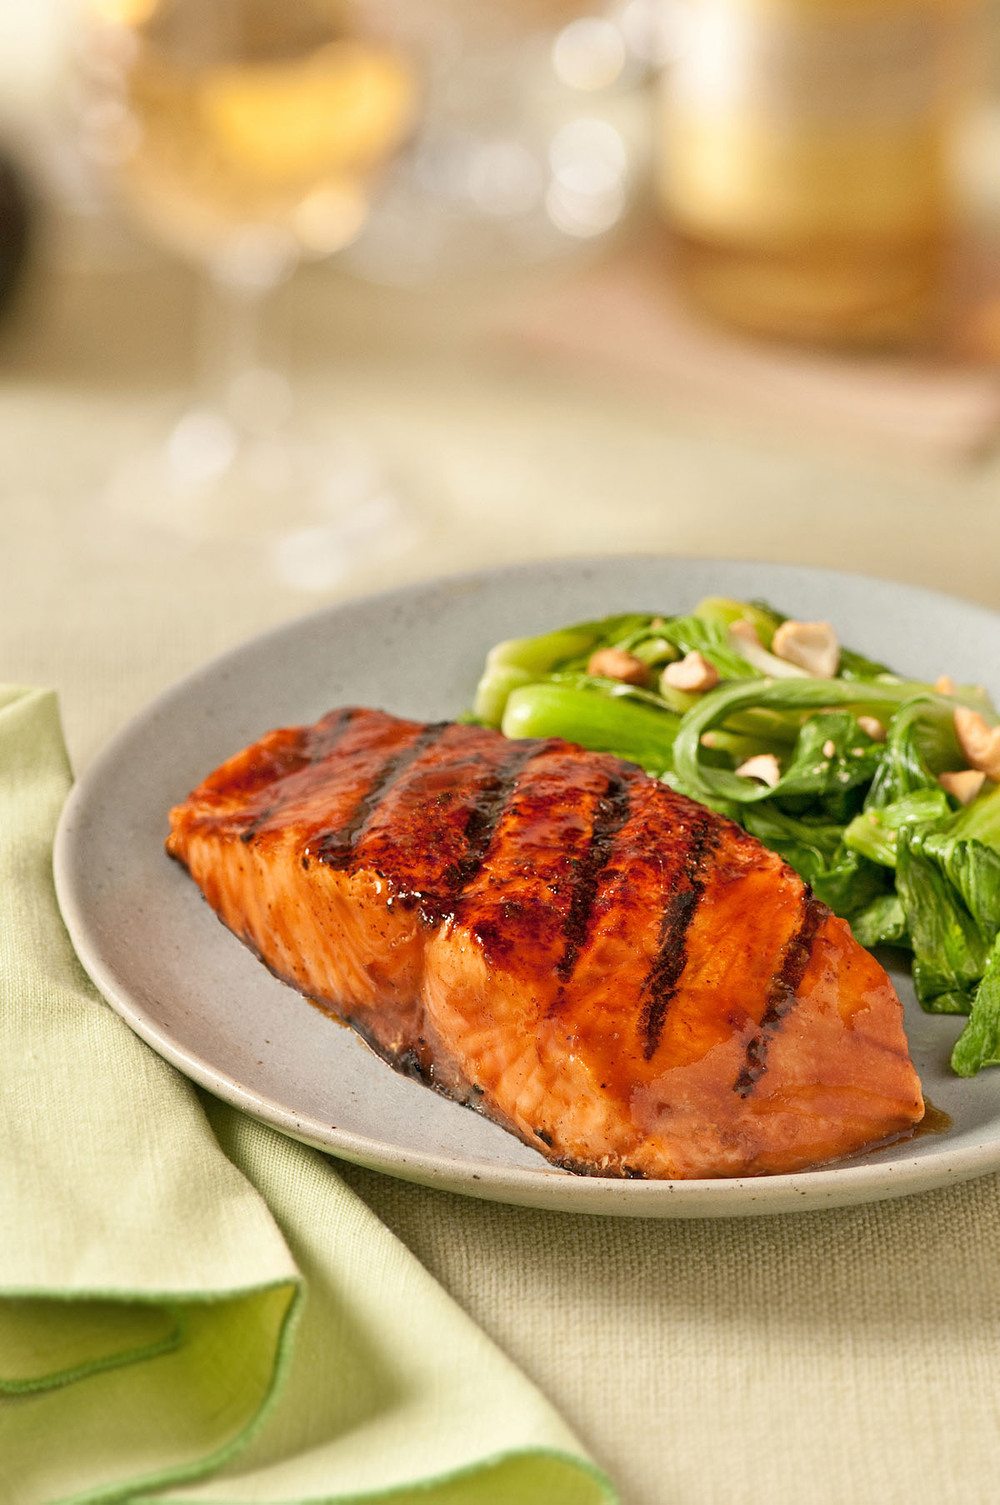 Grilled Salmon with Ginger Glaze